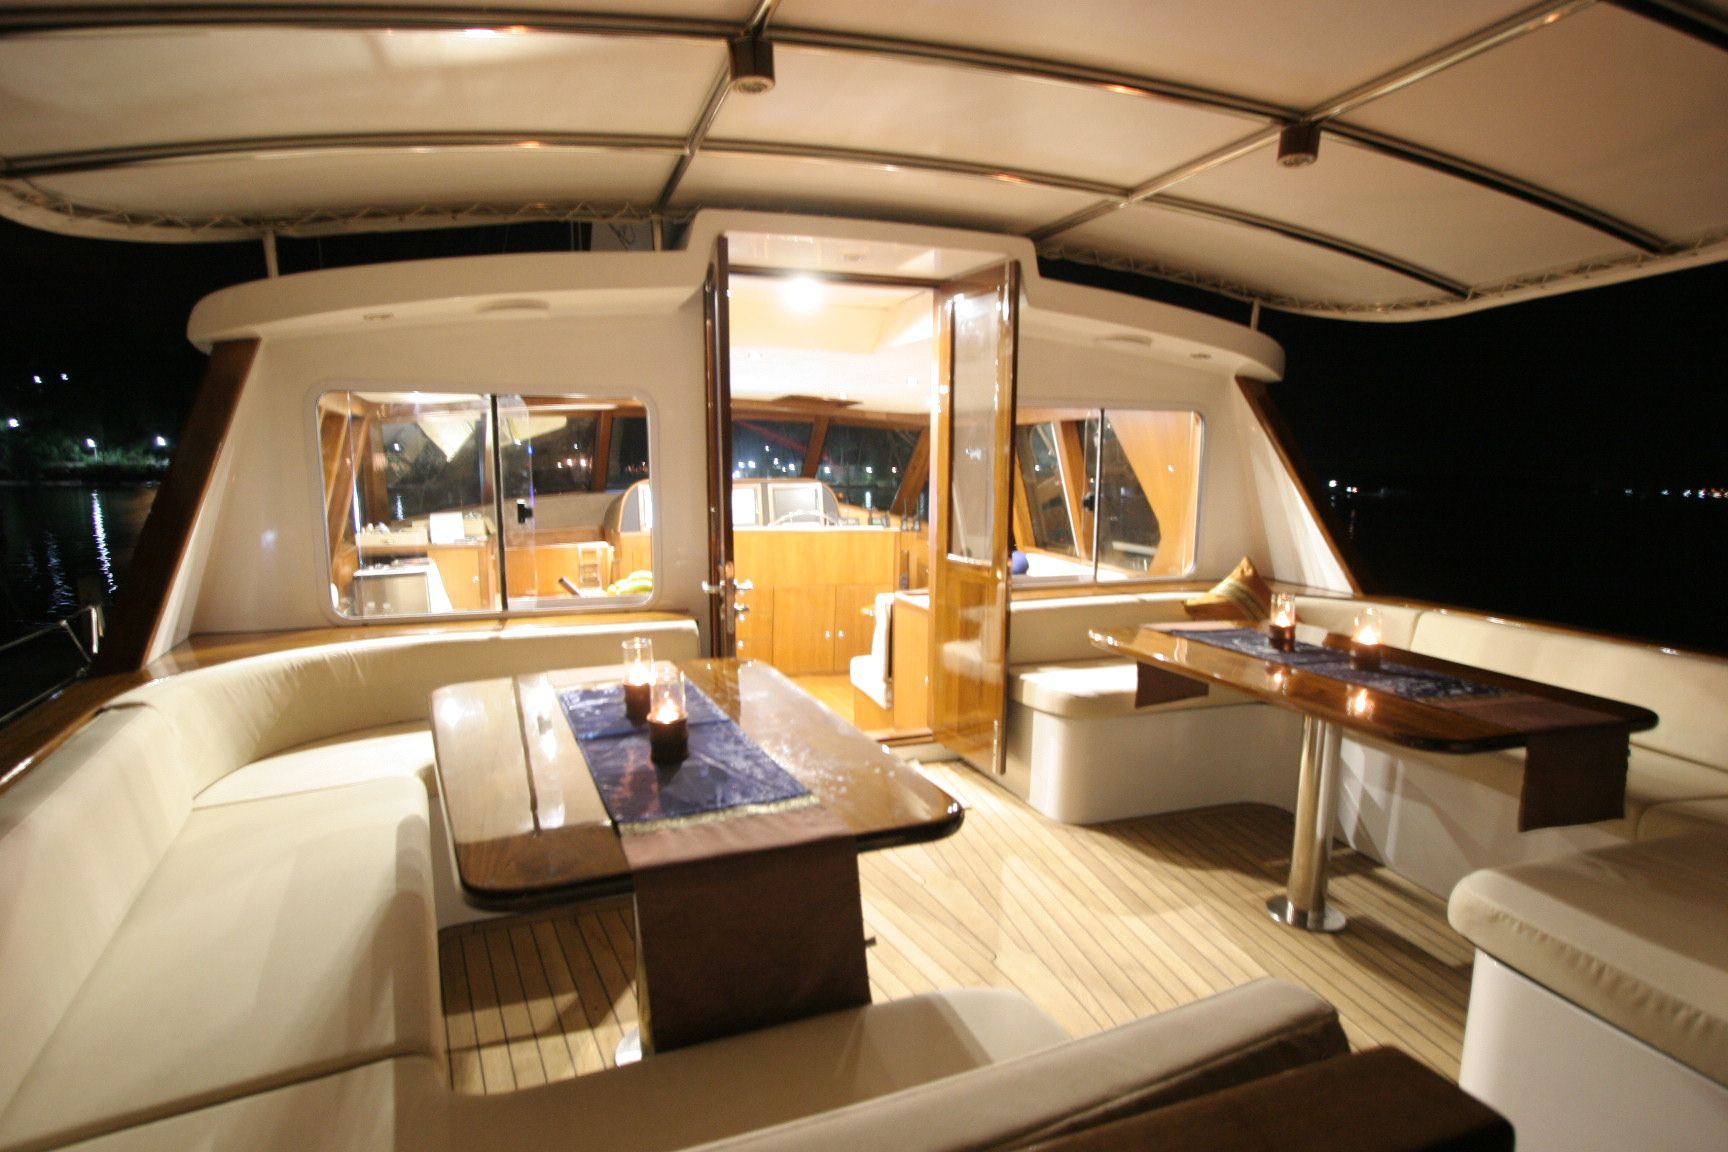 small yacht interiors - Google Search | Luxury yacht ...